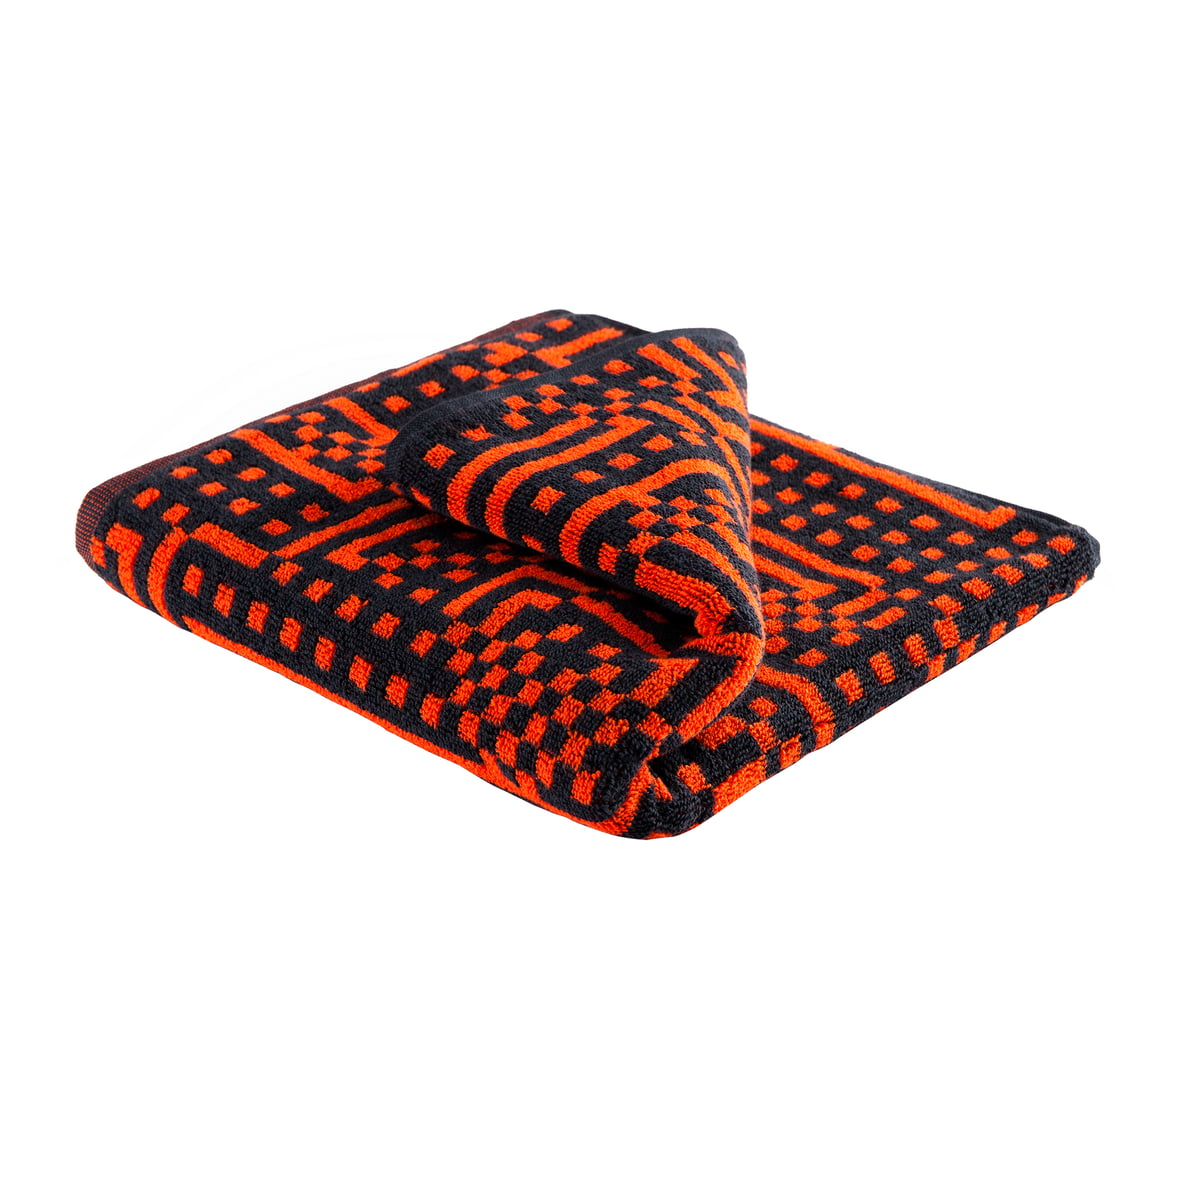 Handtücher Orange Zuzunaga Route Black And Red Orange Handtuch 50 100